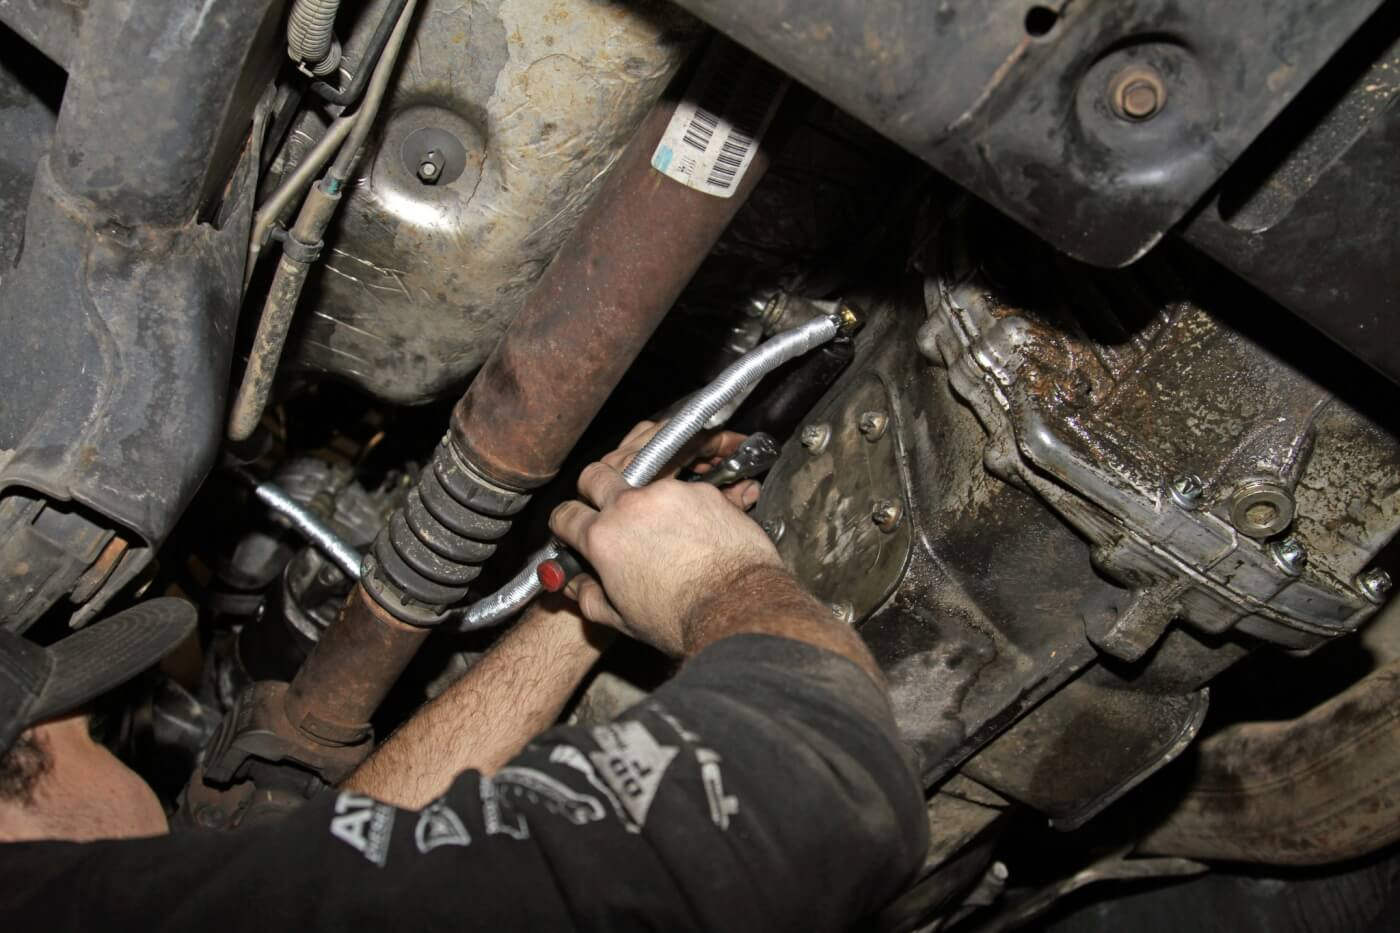 24. Climbing under the truck one more time, Meraz installed the slave cylinder on the transmission in the same way the old slave mounted.